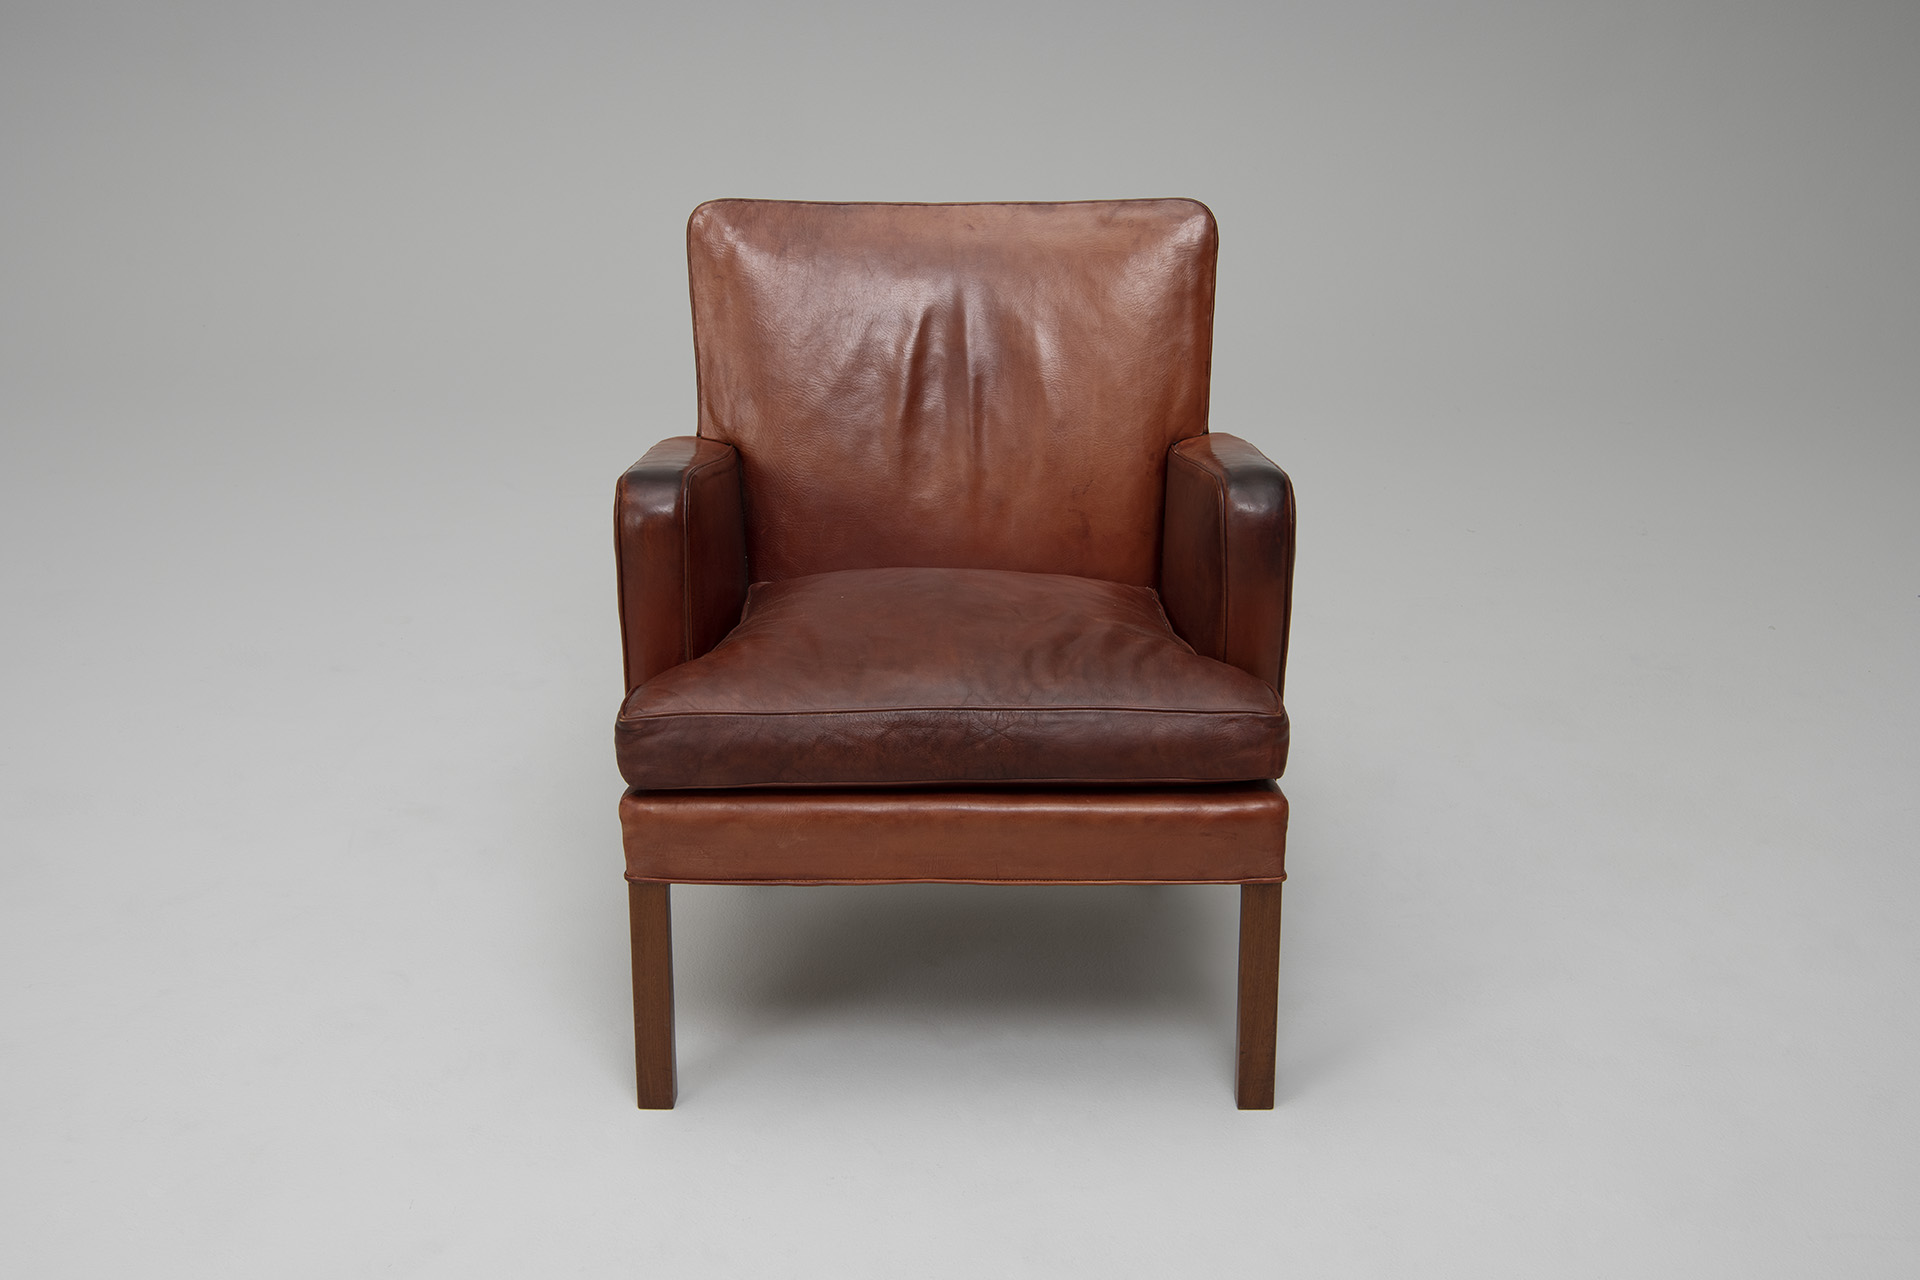 Armchair, Model no. 5313